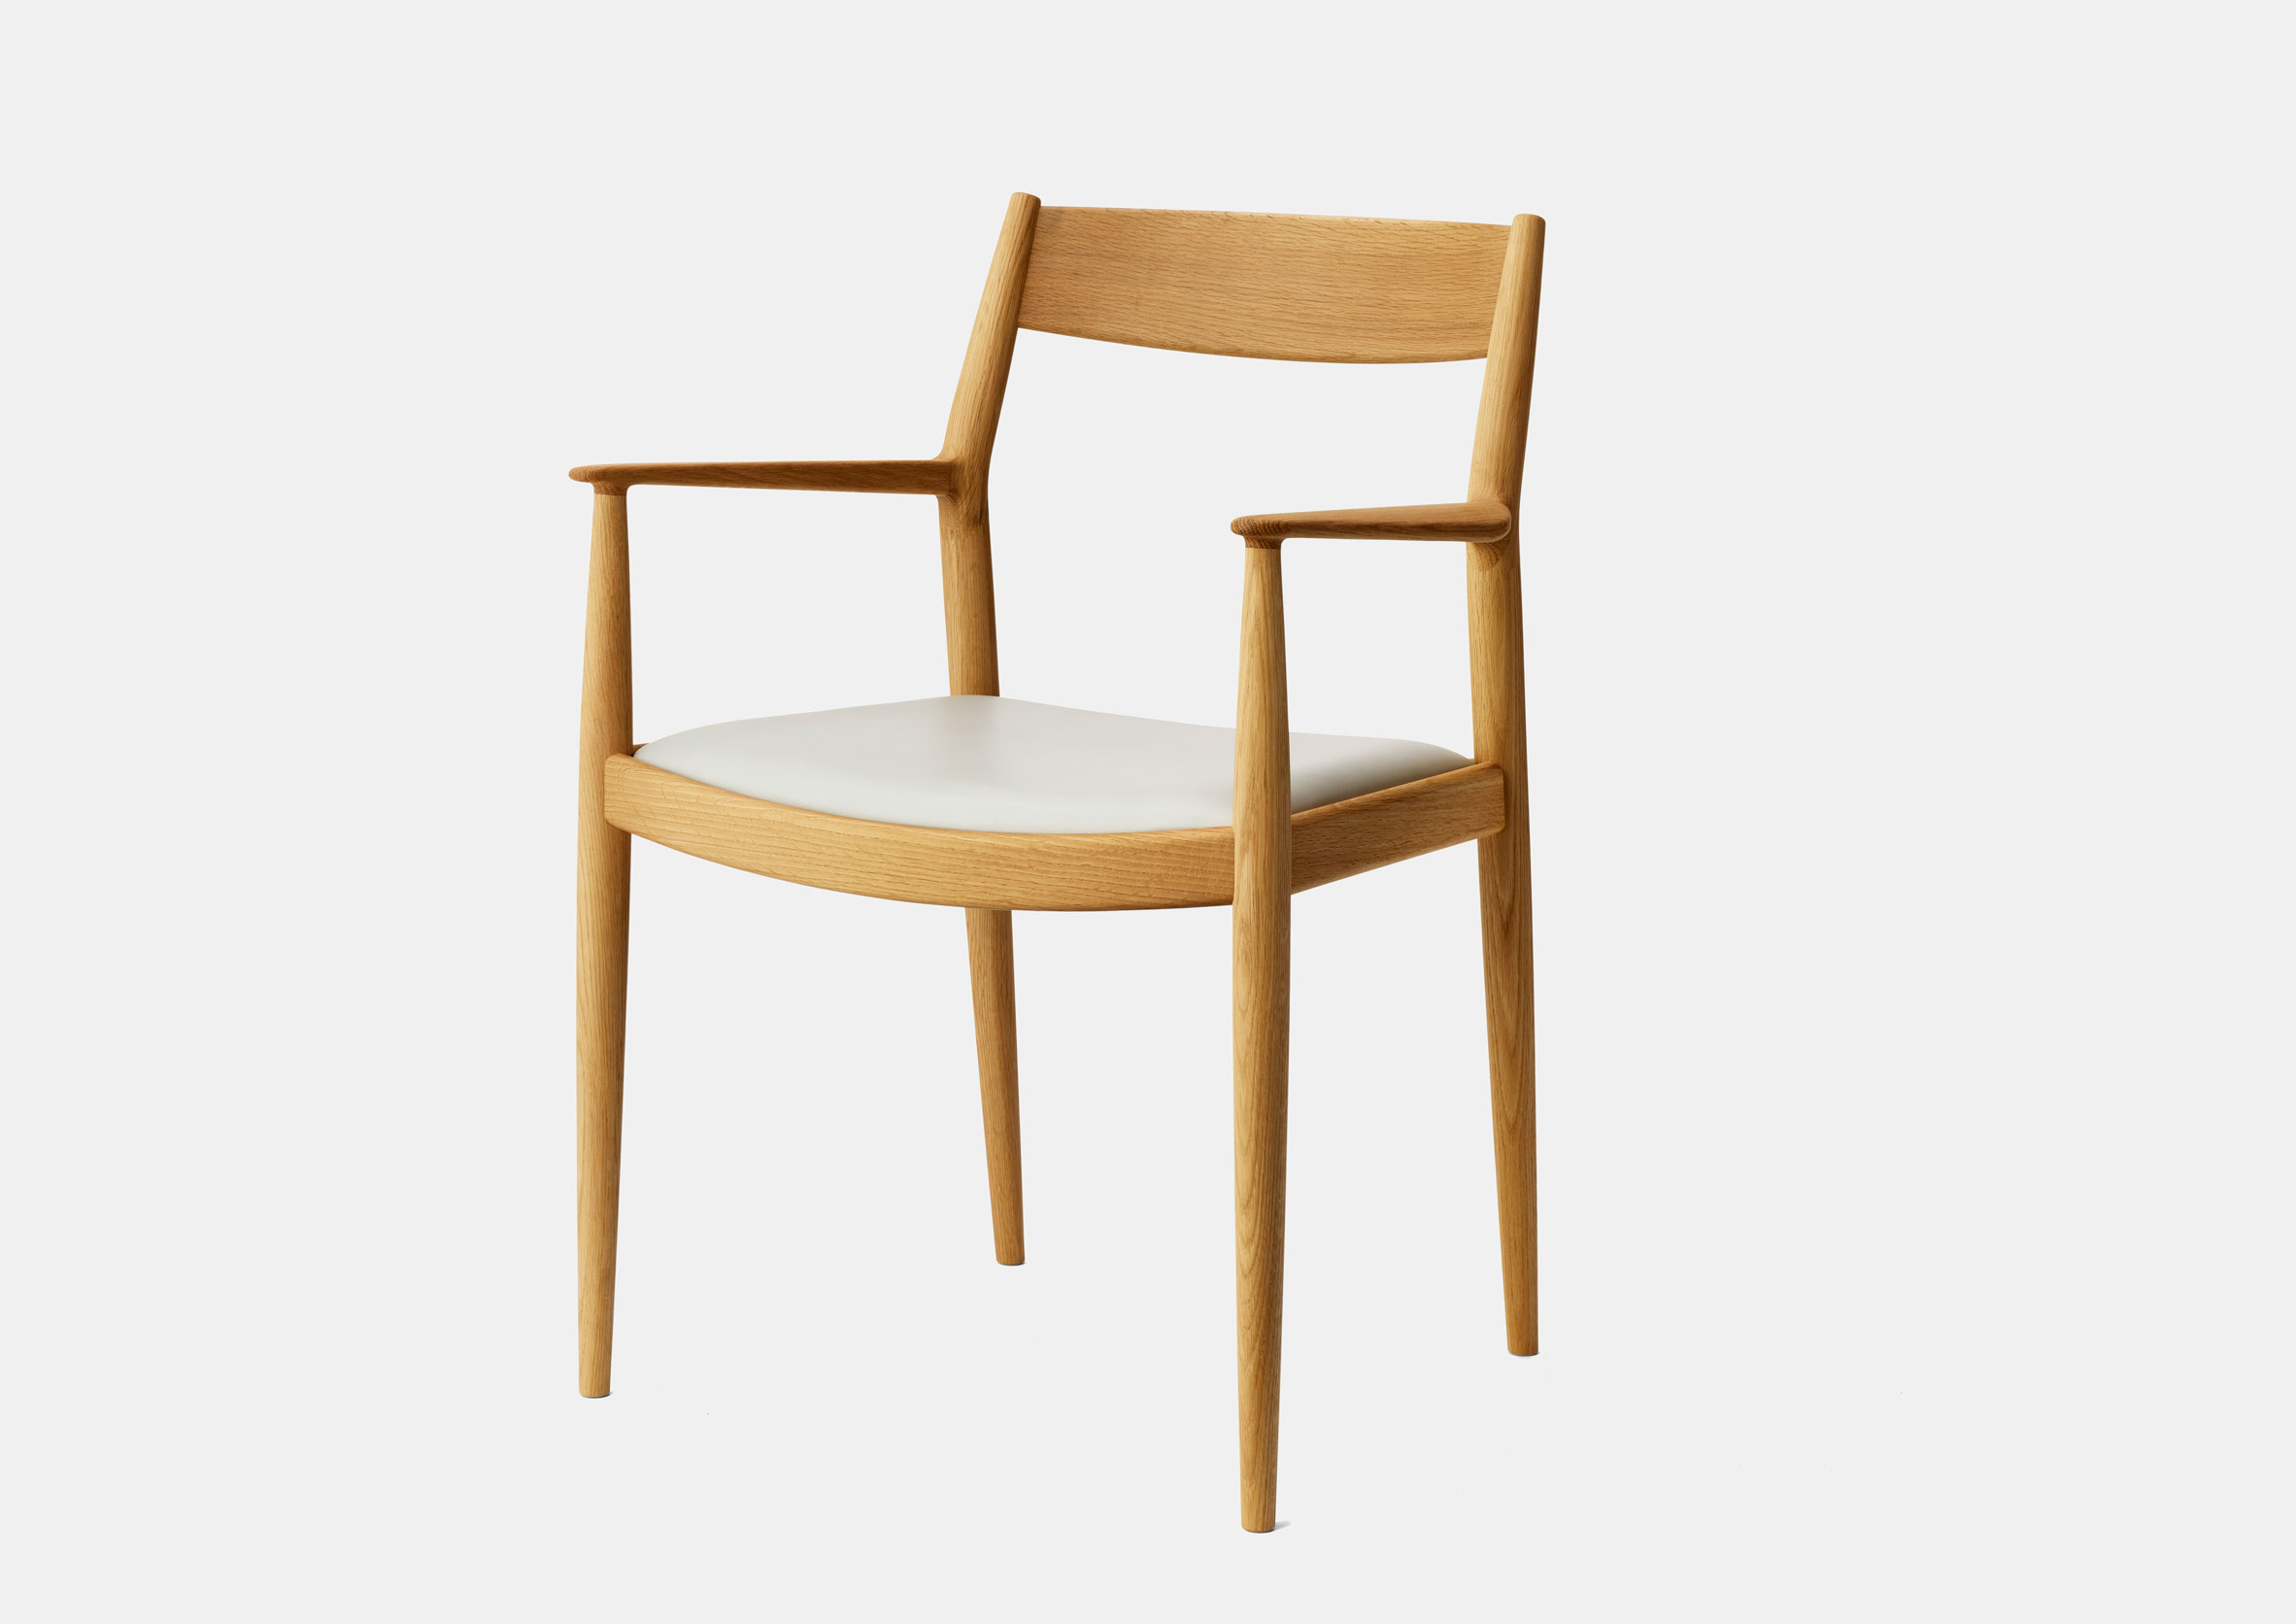 Wooden Kinuta dining chair by Norm Architects for Karimoku